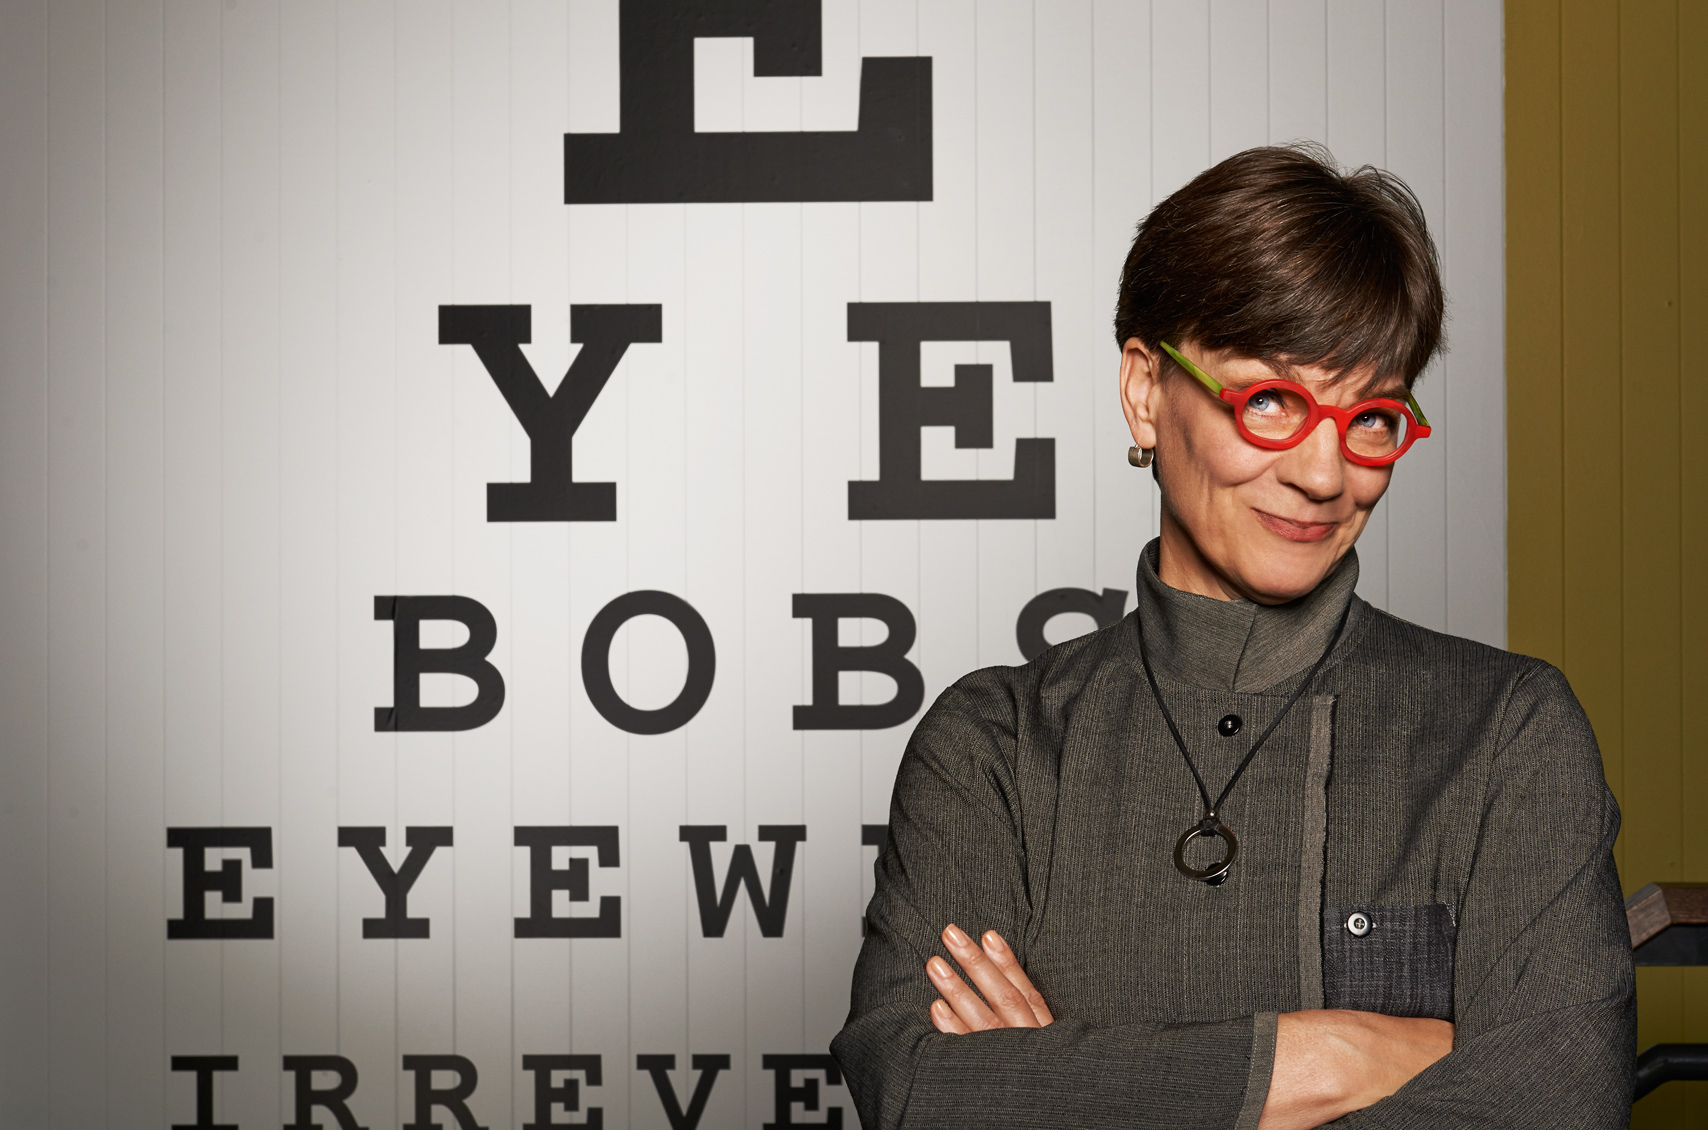 Sassy portrait of CEO and creator of Eyebobs